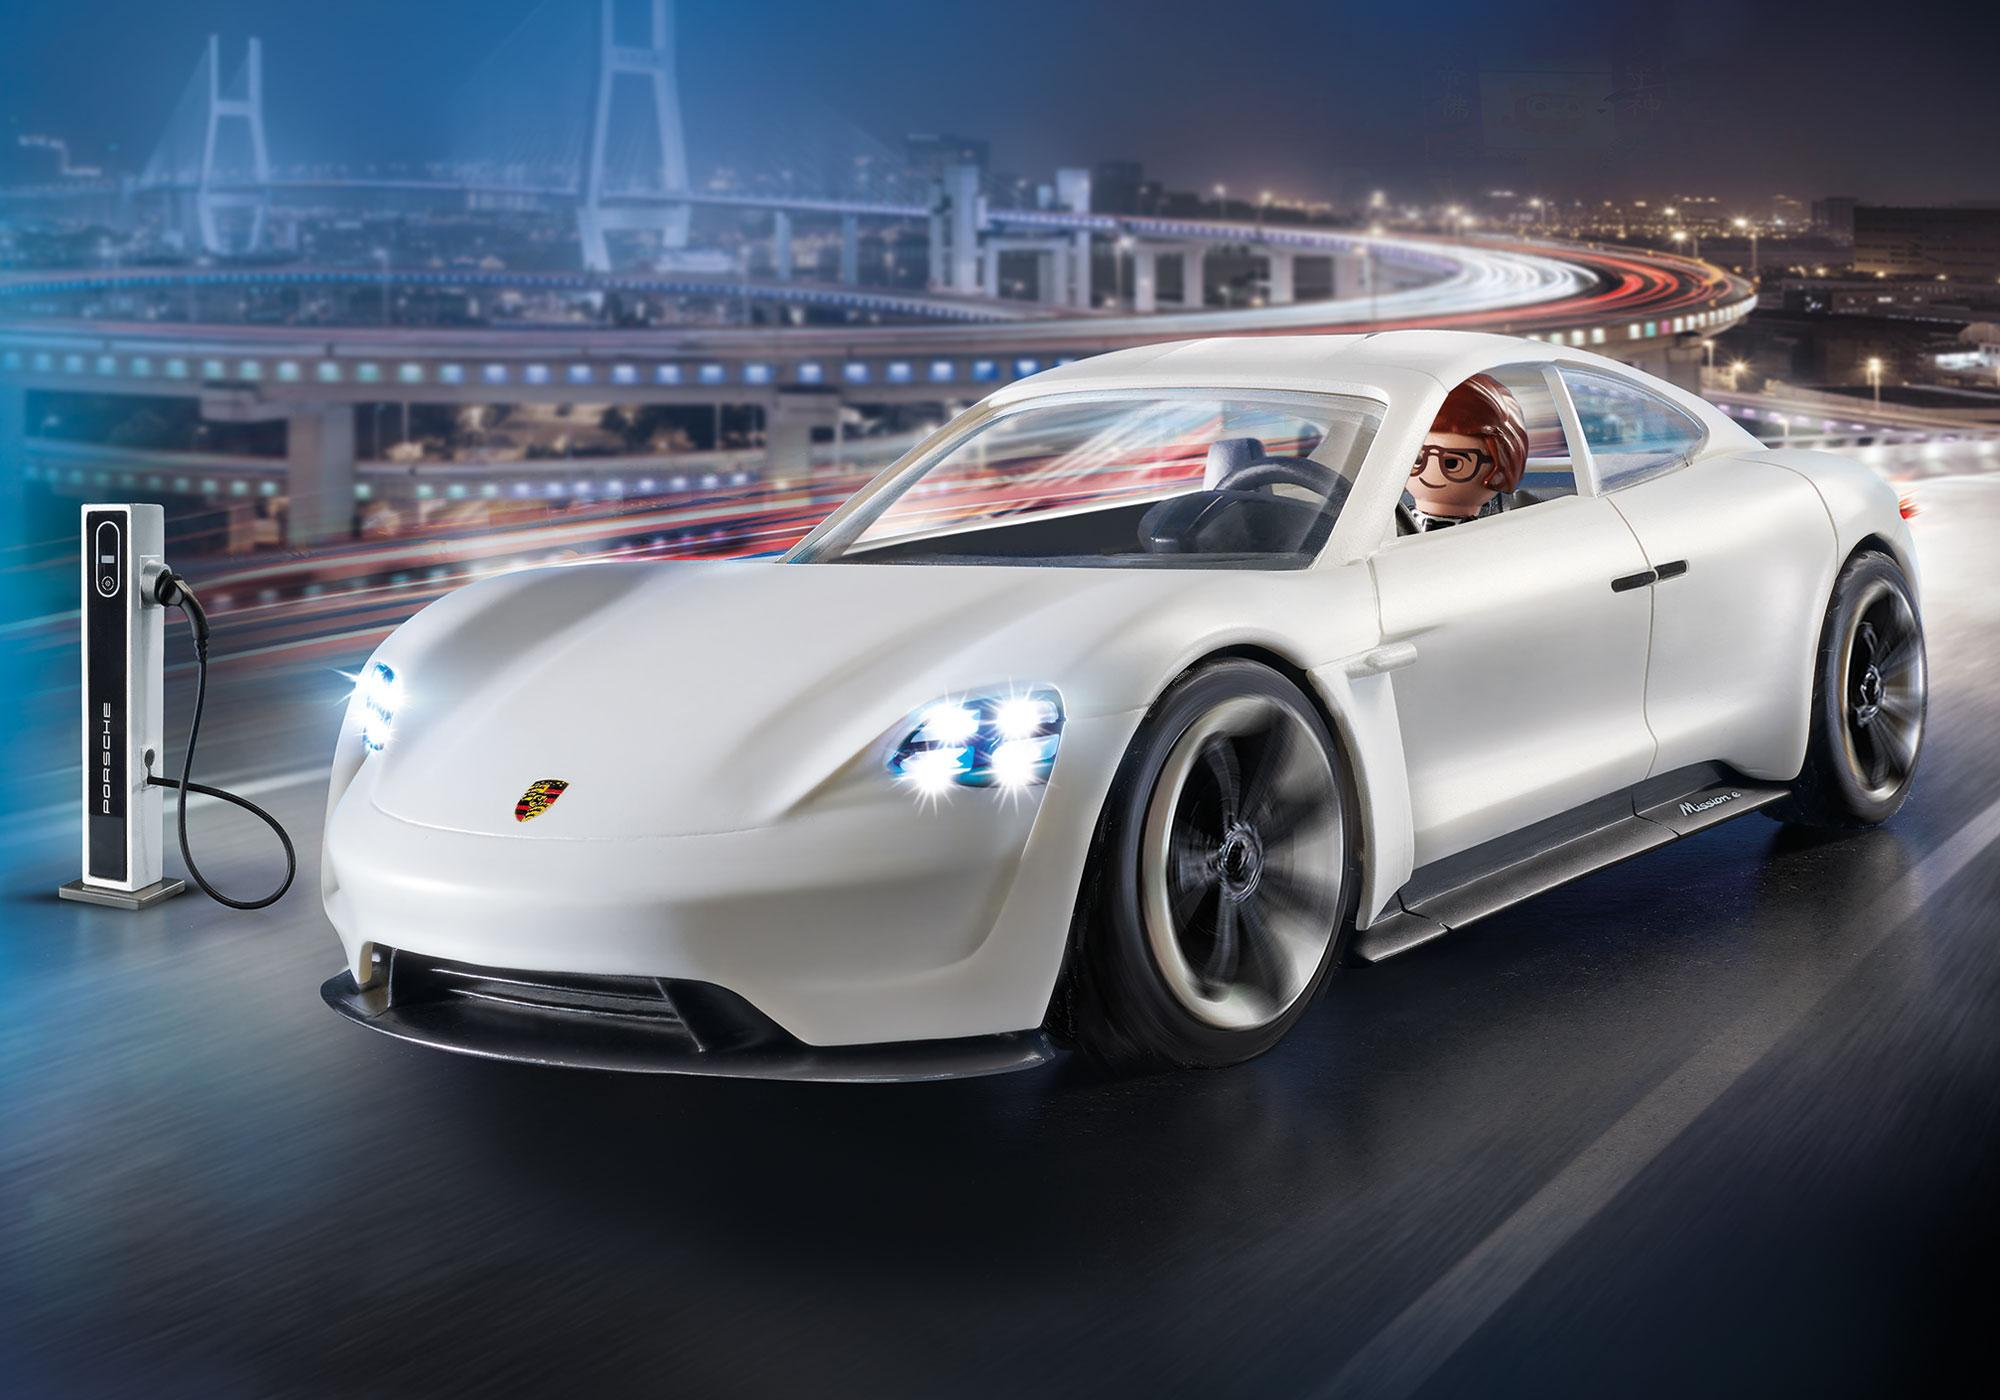 70078_product_detail/PLAYMOBIL: THE MOVIE Rex Dasher et  Porsche Mission E